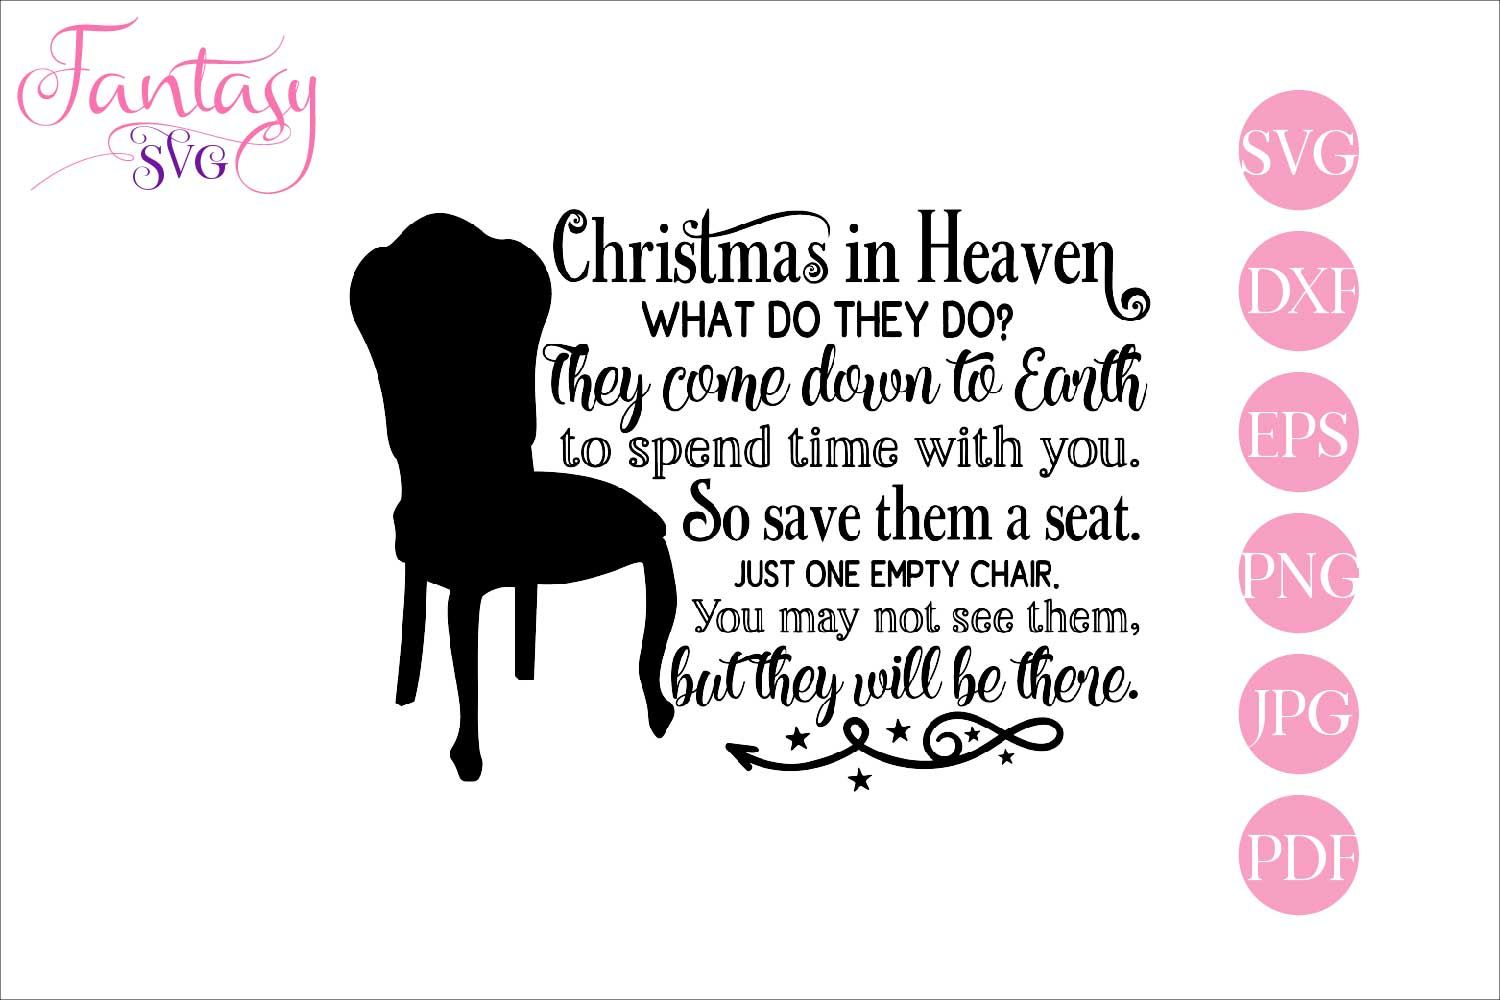 Download Christmas in Heaven (Graphic) by Fantasy SVG